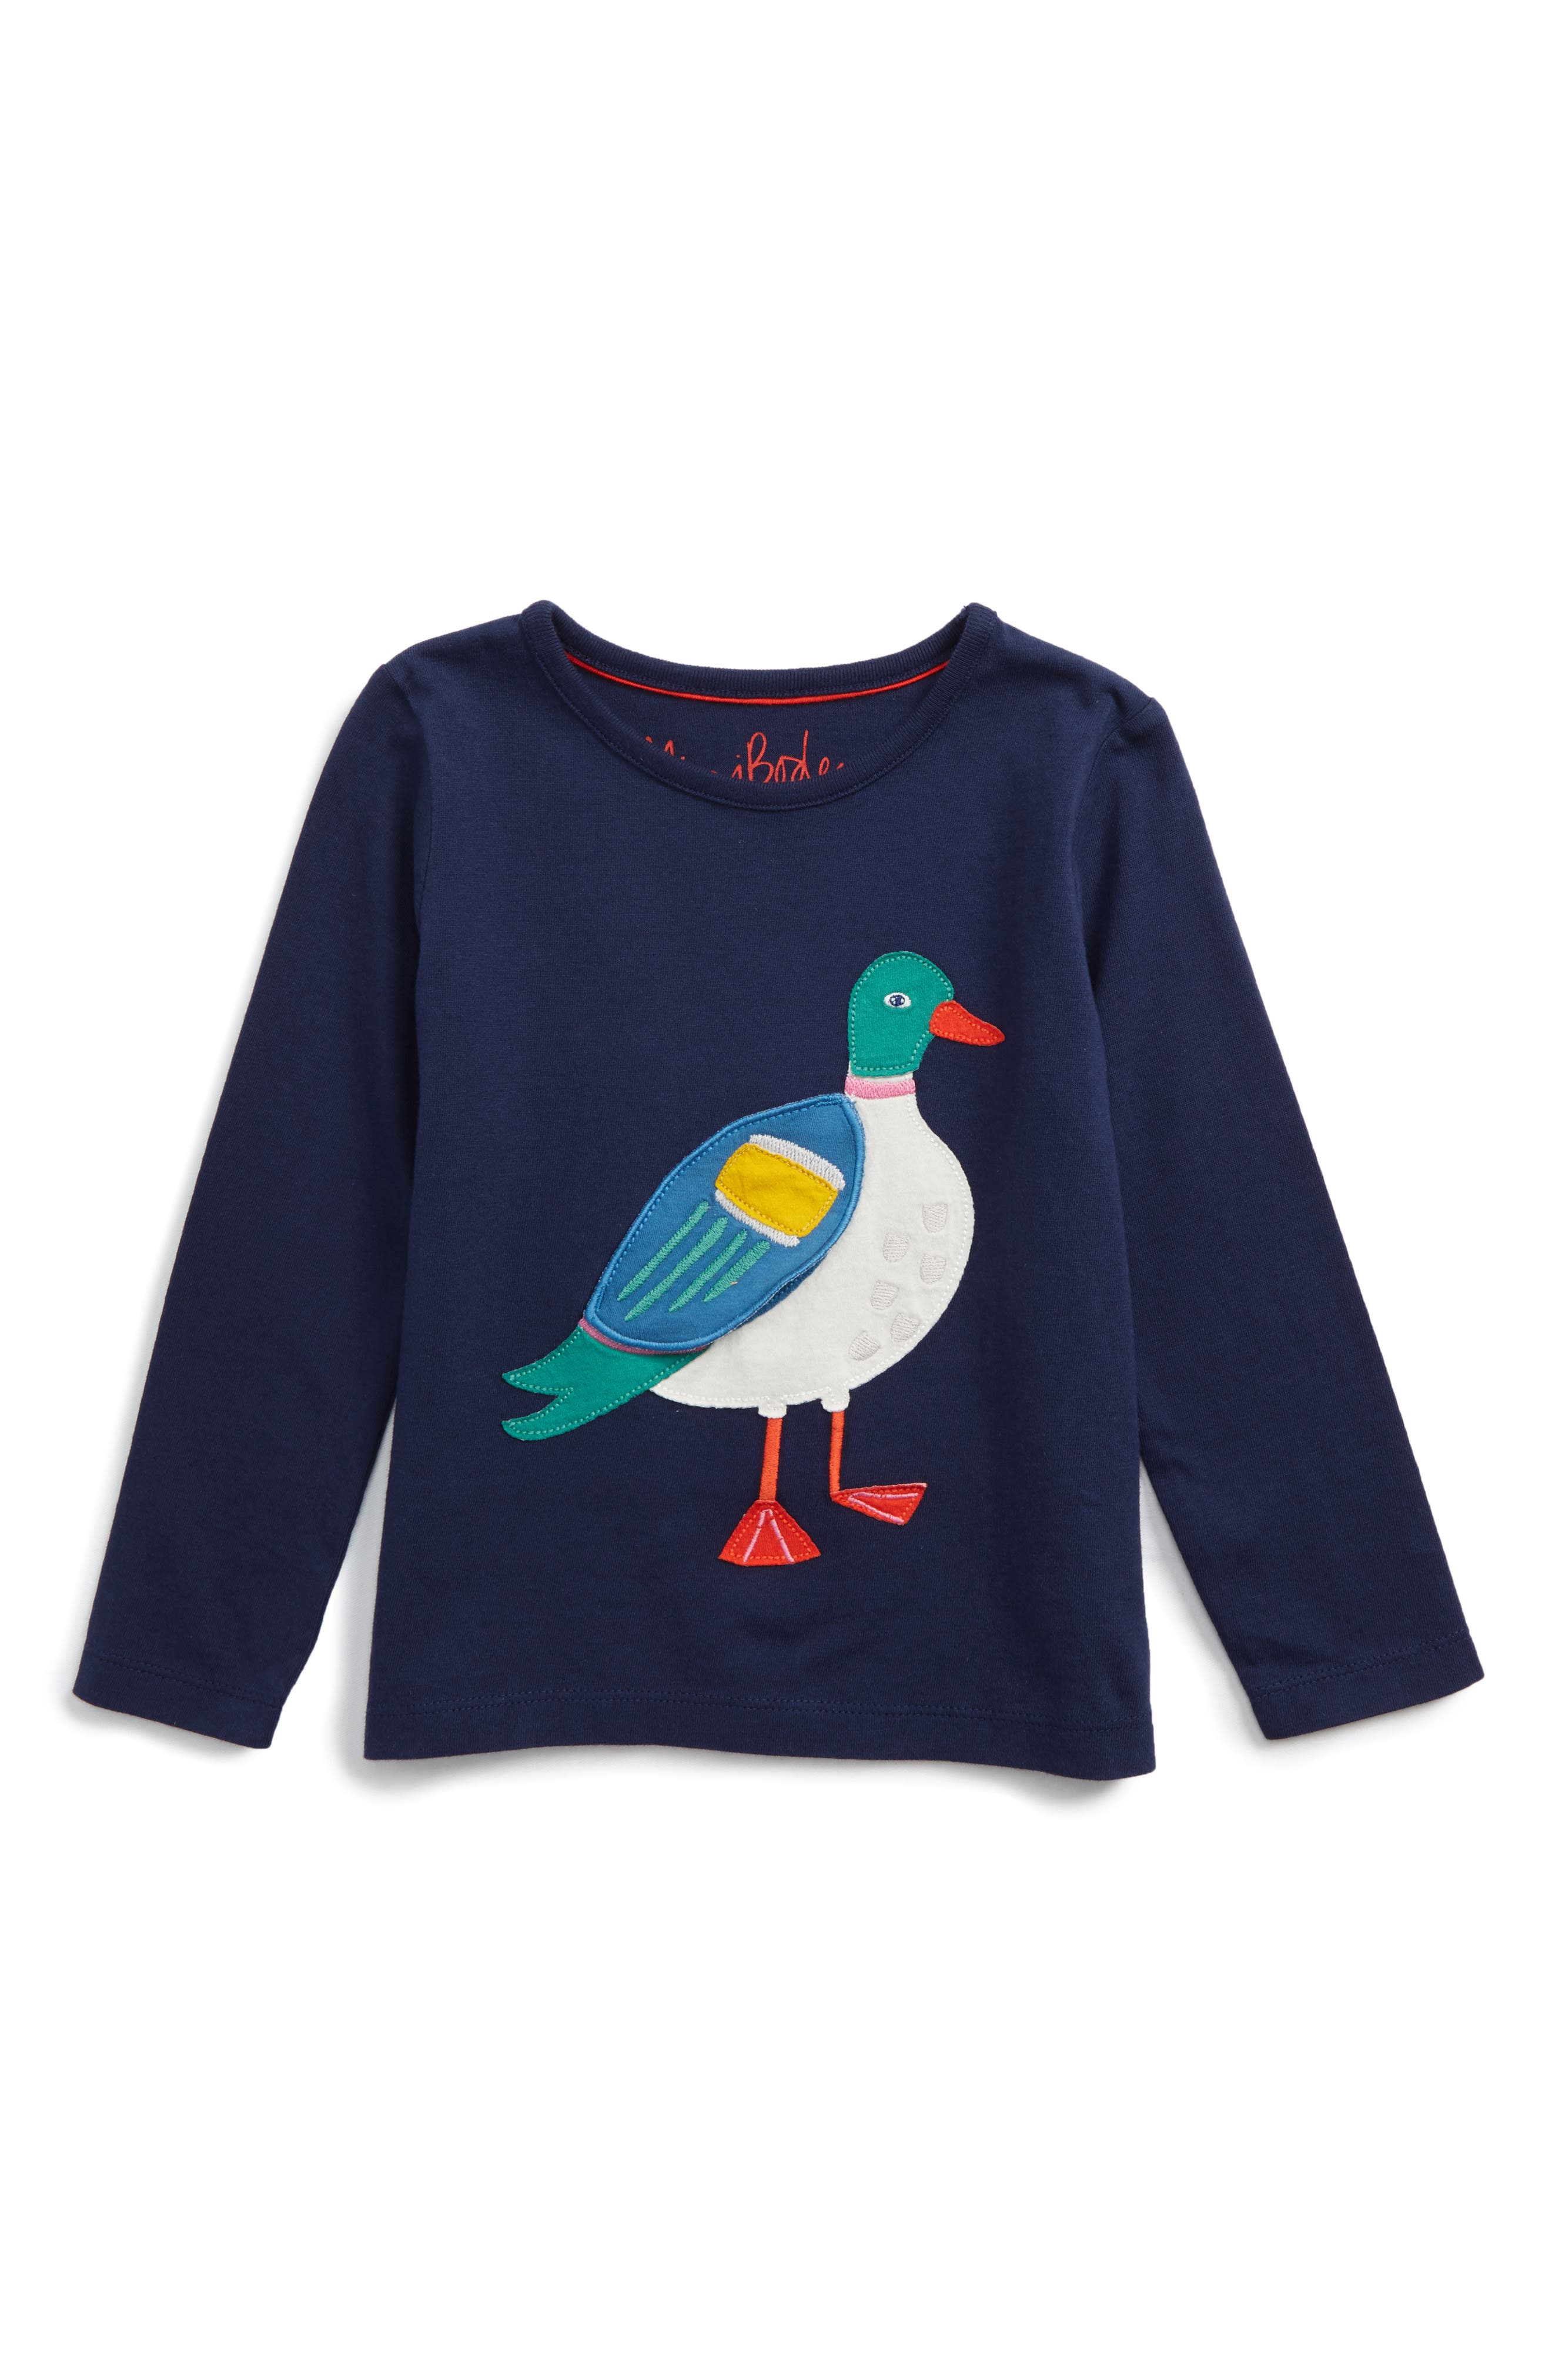 Alternate Image 1 Selected - Mini Boden River Bank Appliqué Tee (Toddler Girls, Little Girls & Big Girls)